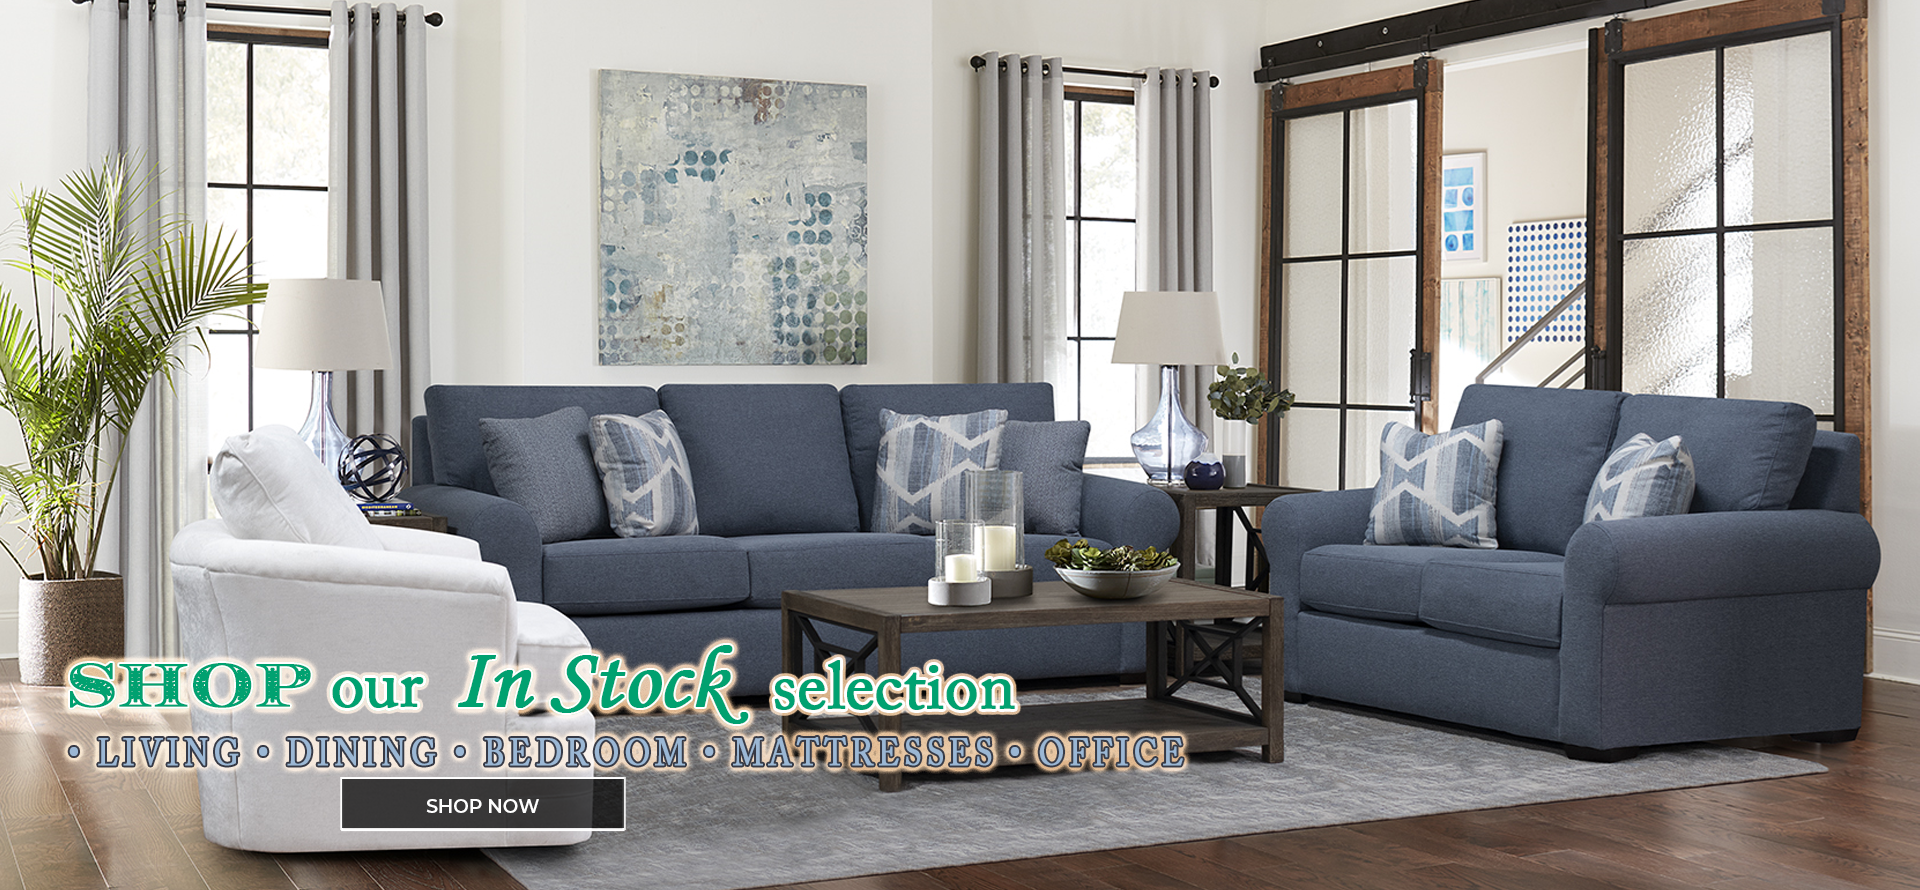 Shop our in stock selection. Click to start shopping.